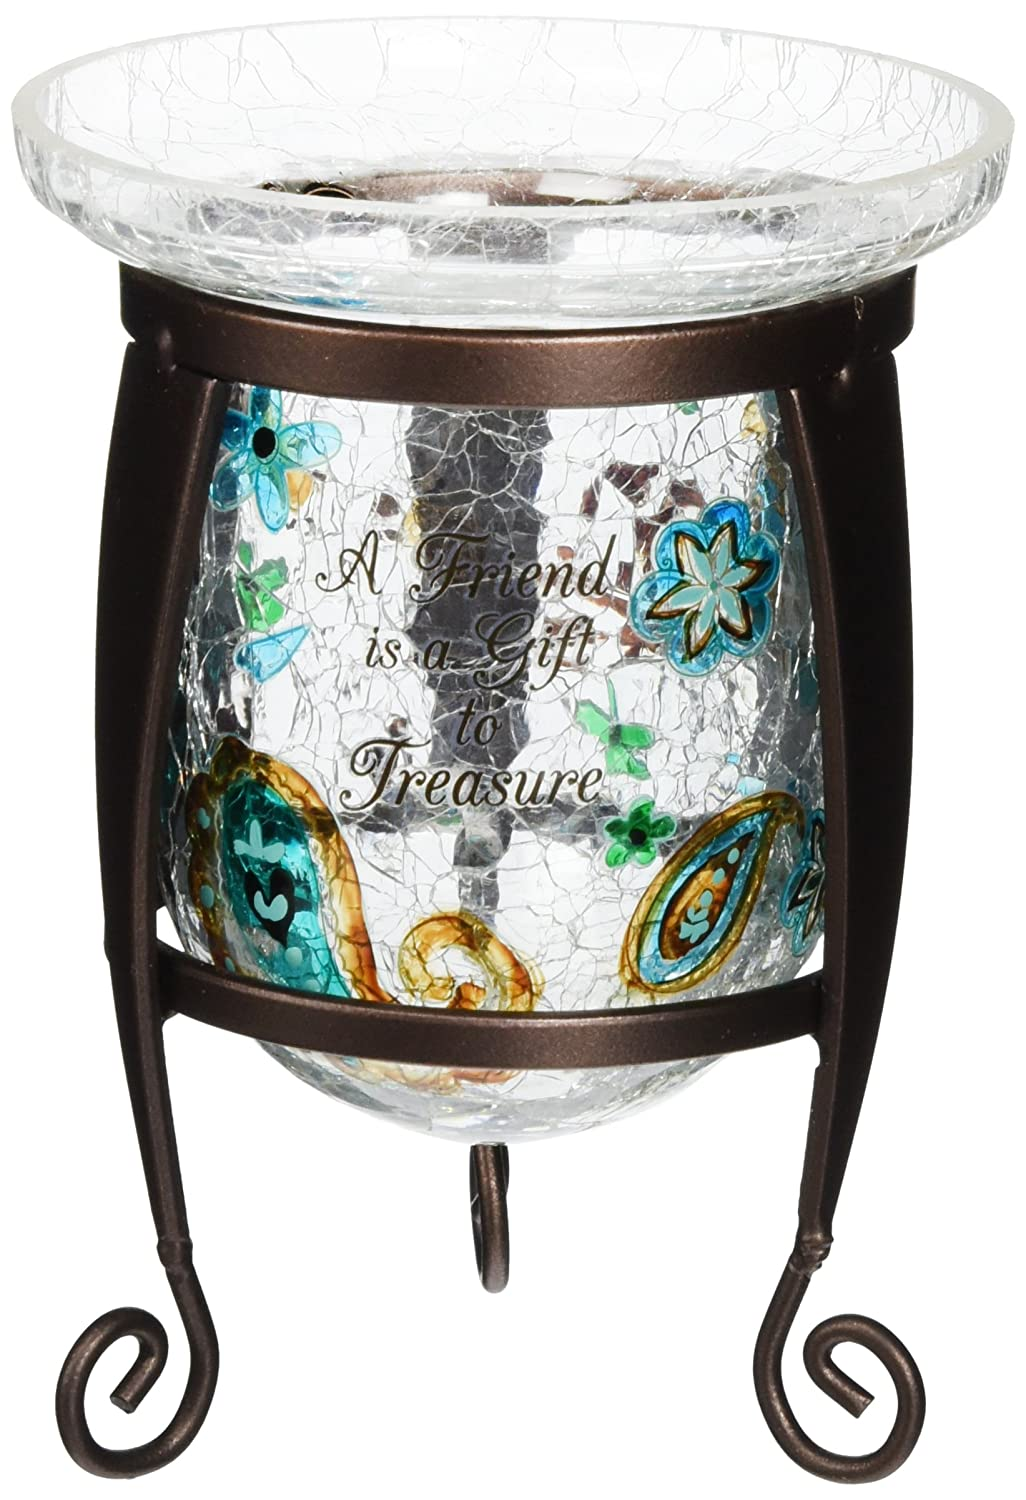 Perfectly Paisley Friend Votive by Pavilion, 4-3/4-Inch Tall, Candle Not Included, Crackled Glass Pavilion Gift Company 76103